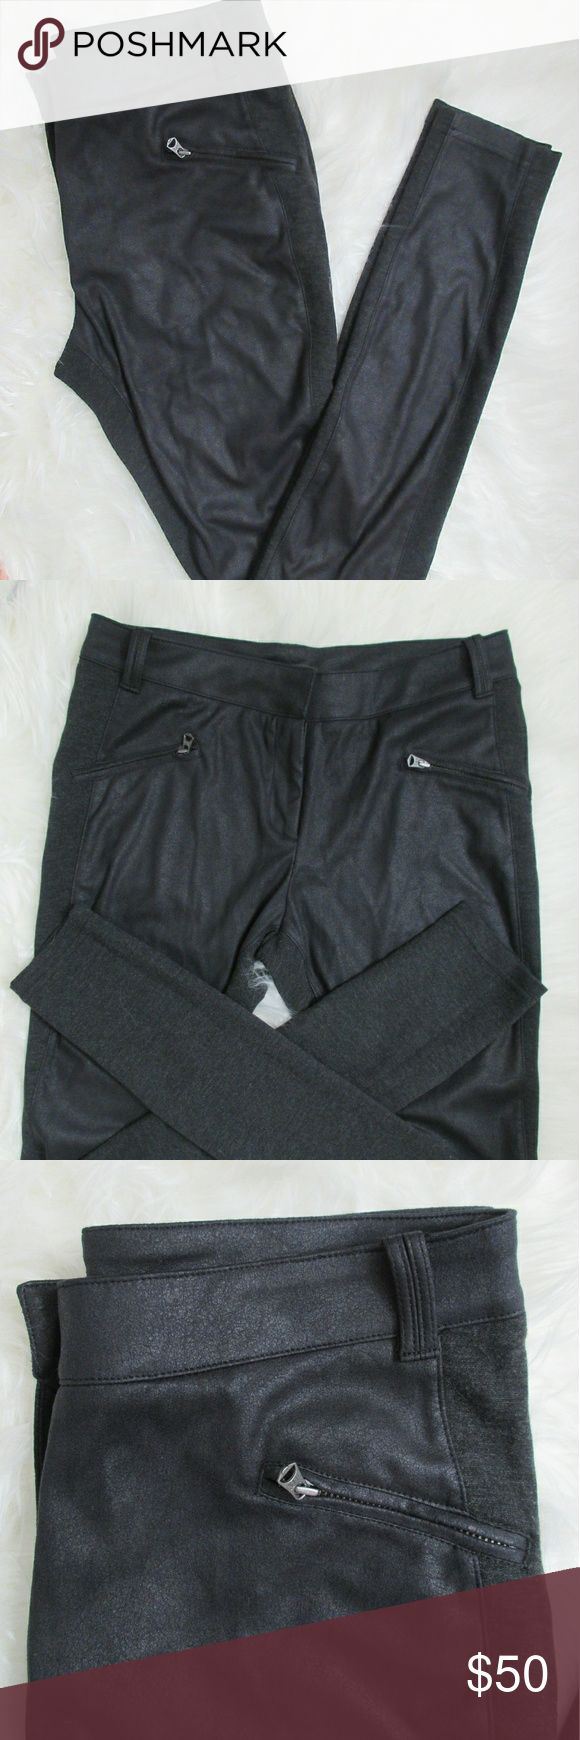 Armani Exchange - Leggings With Front Leather ▪ Used but in good conditions.  ▪ Leggings Armani Exchange Pants Leggings